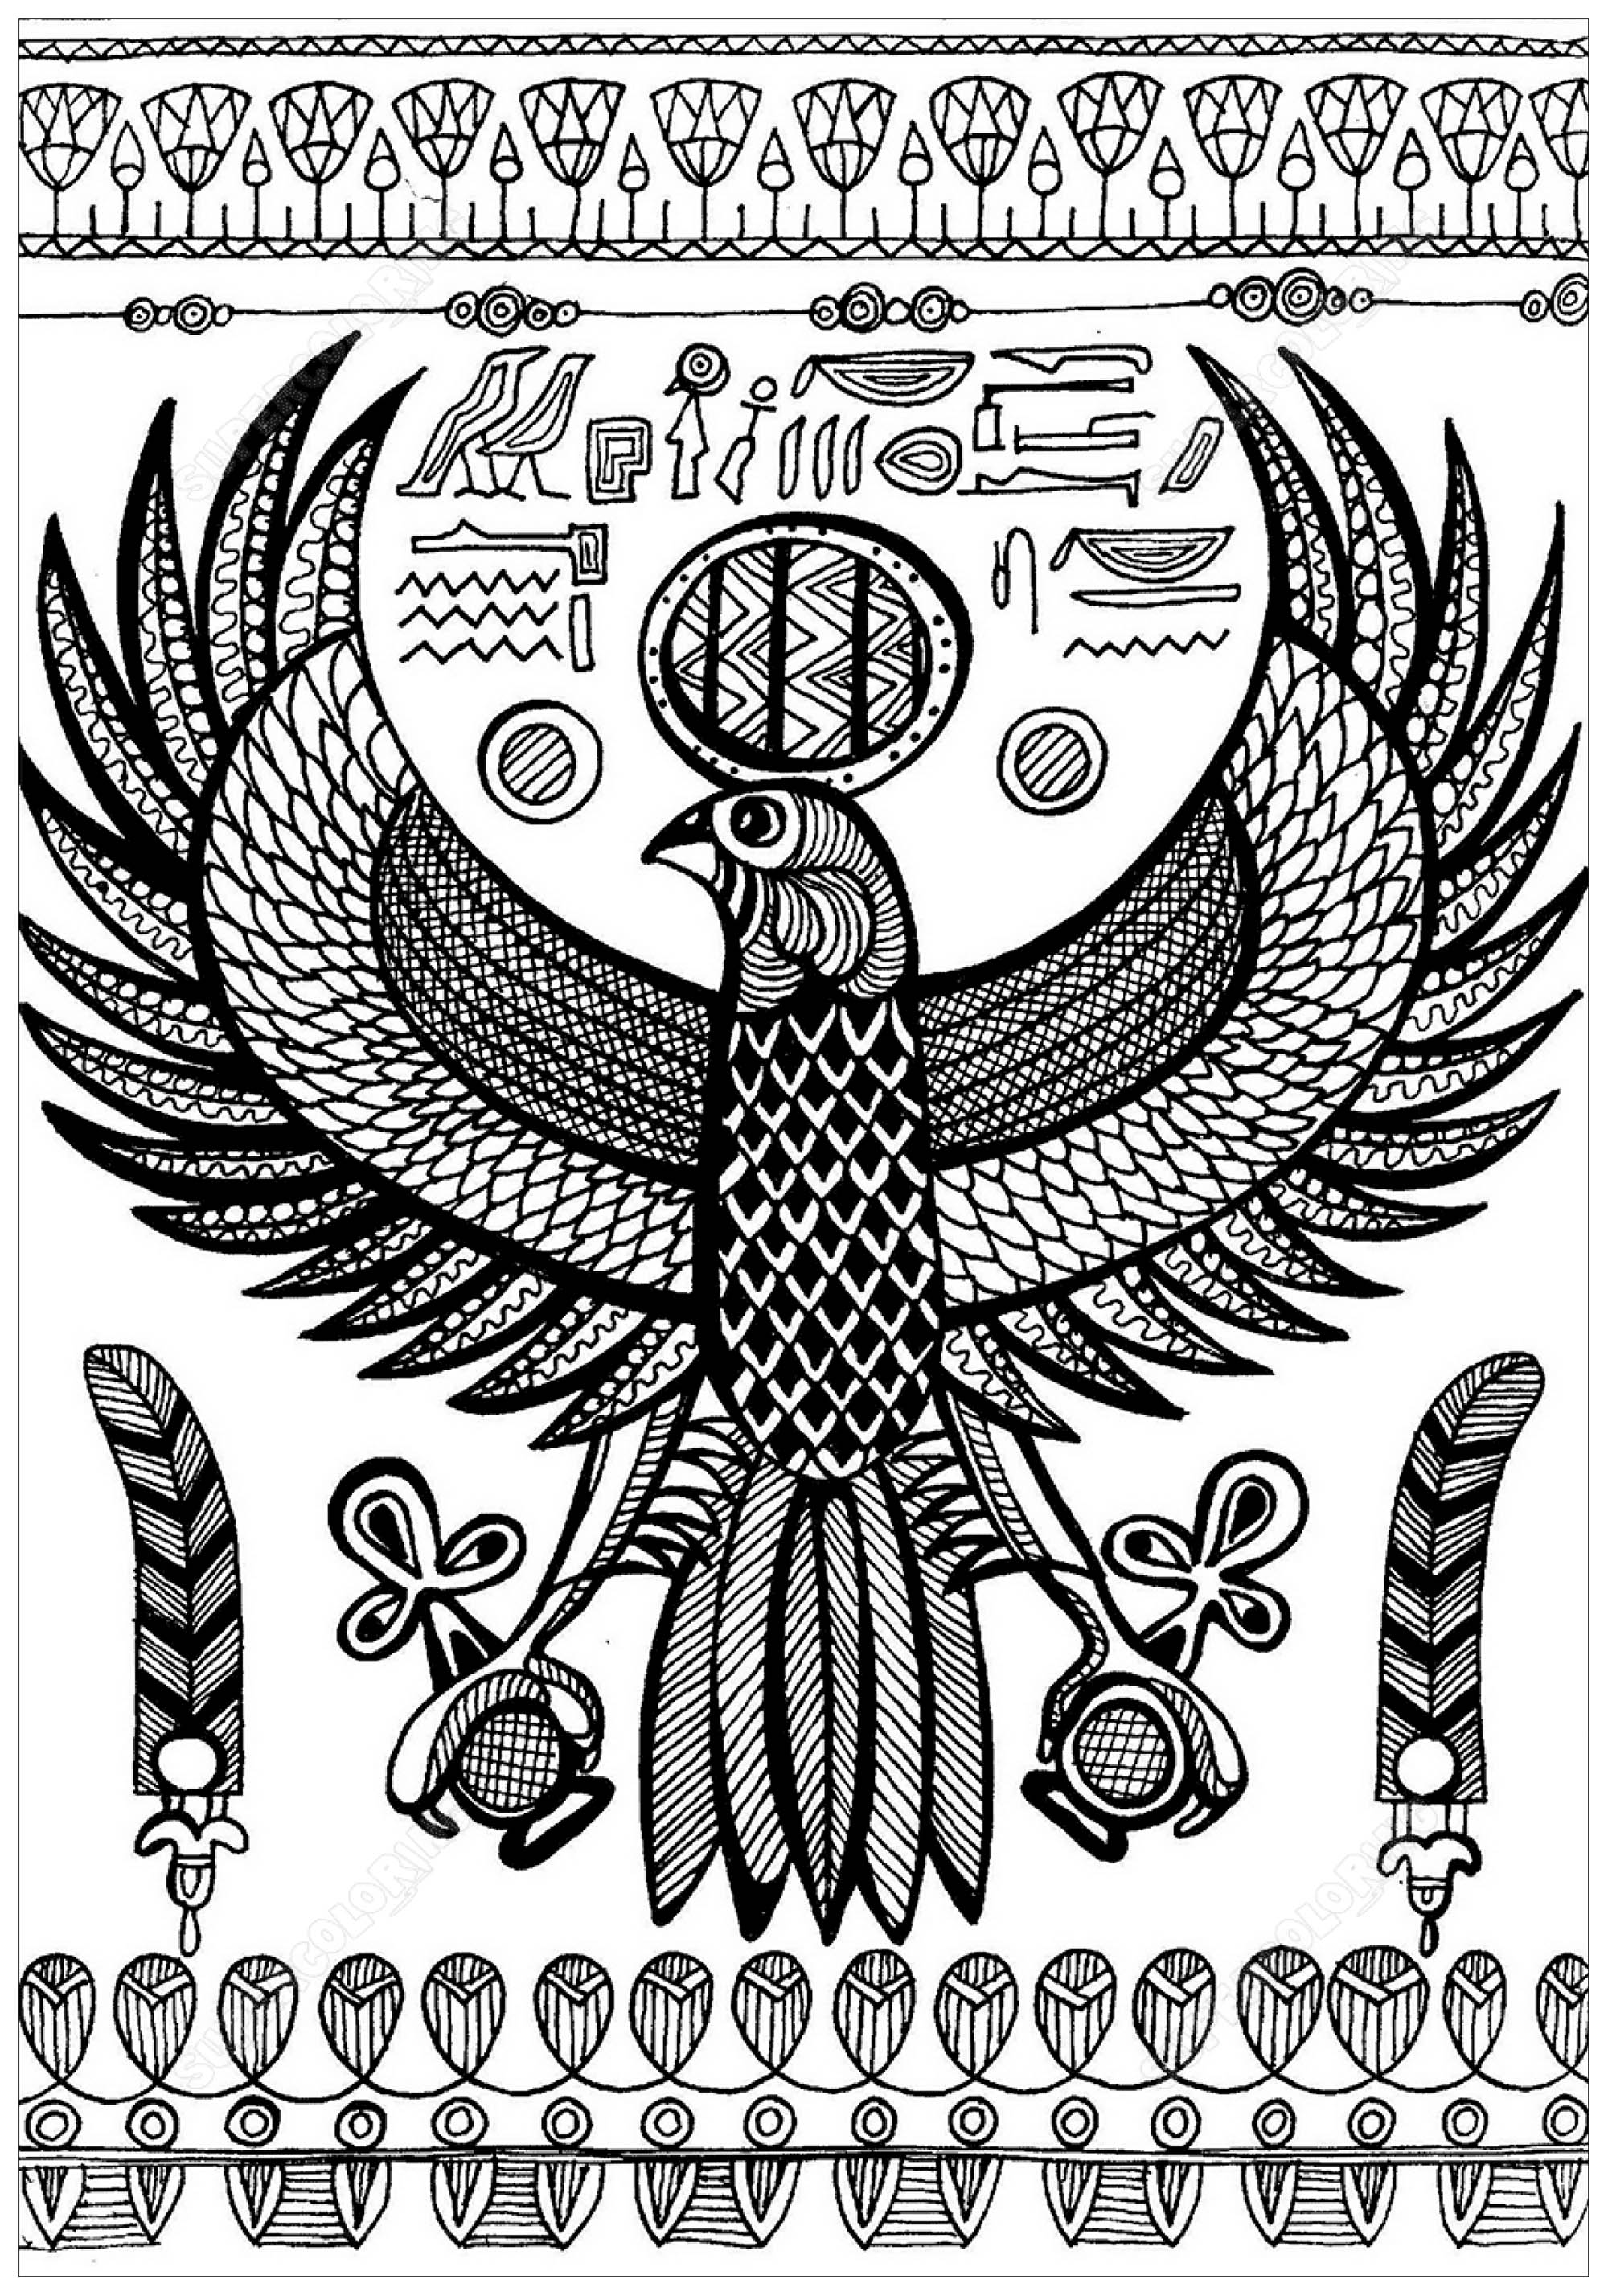 Hieroglyph Coloring pages Just Color Coloring pages